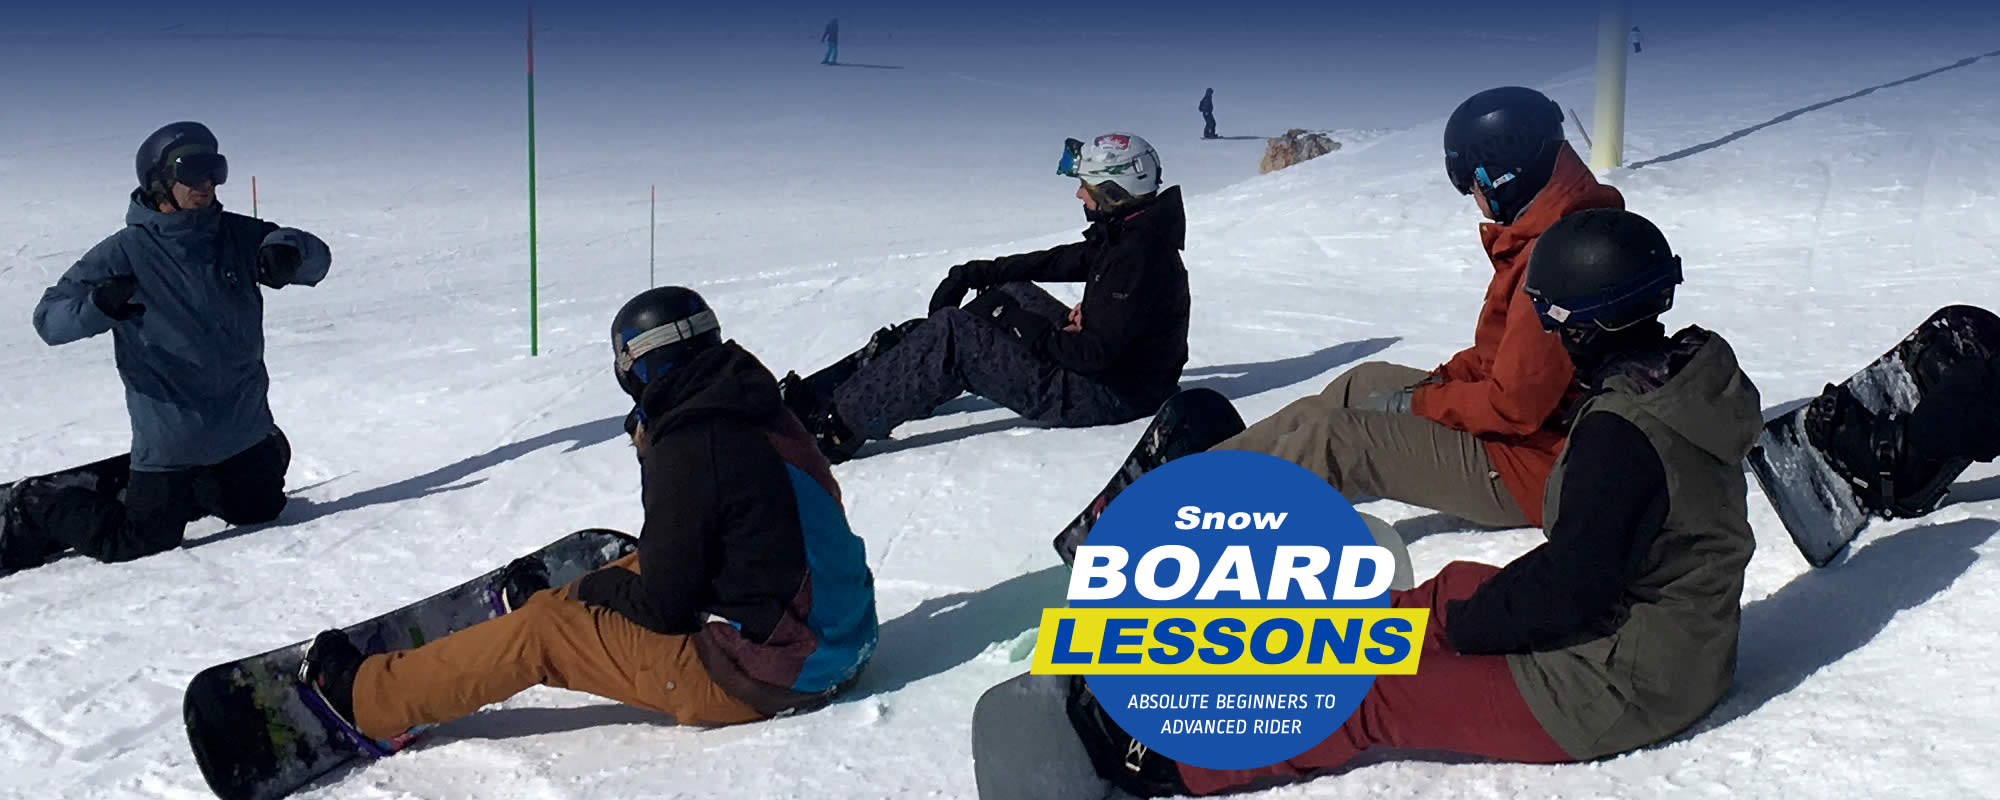 Snow Board Lessons at Val d'Isere in the French Alps